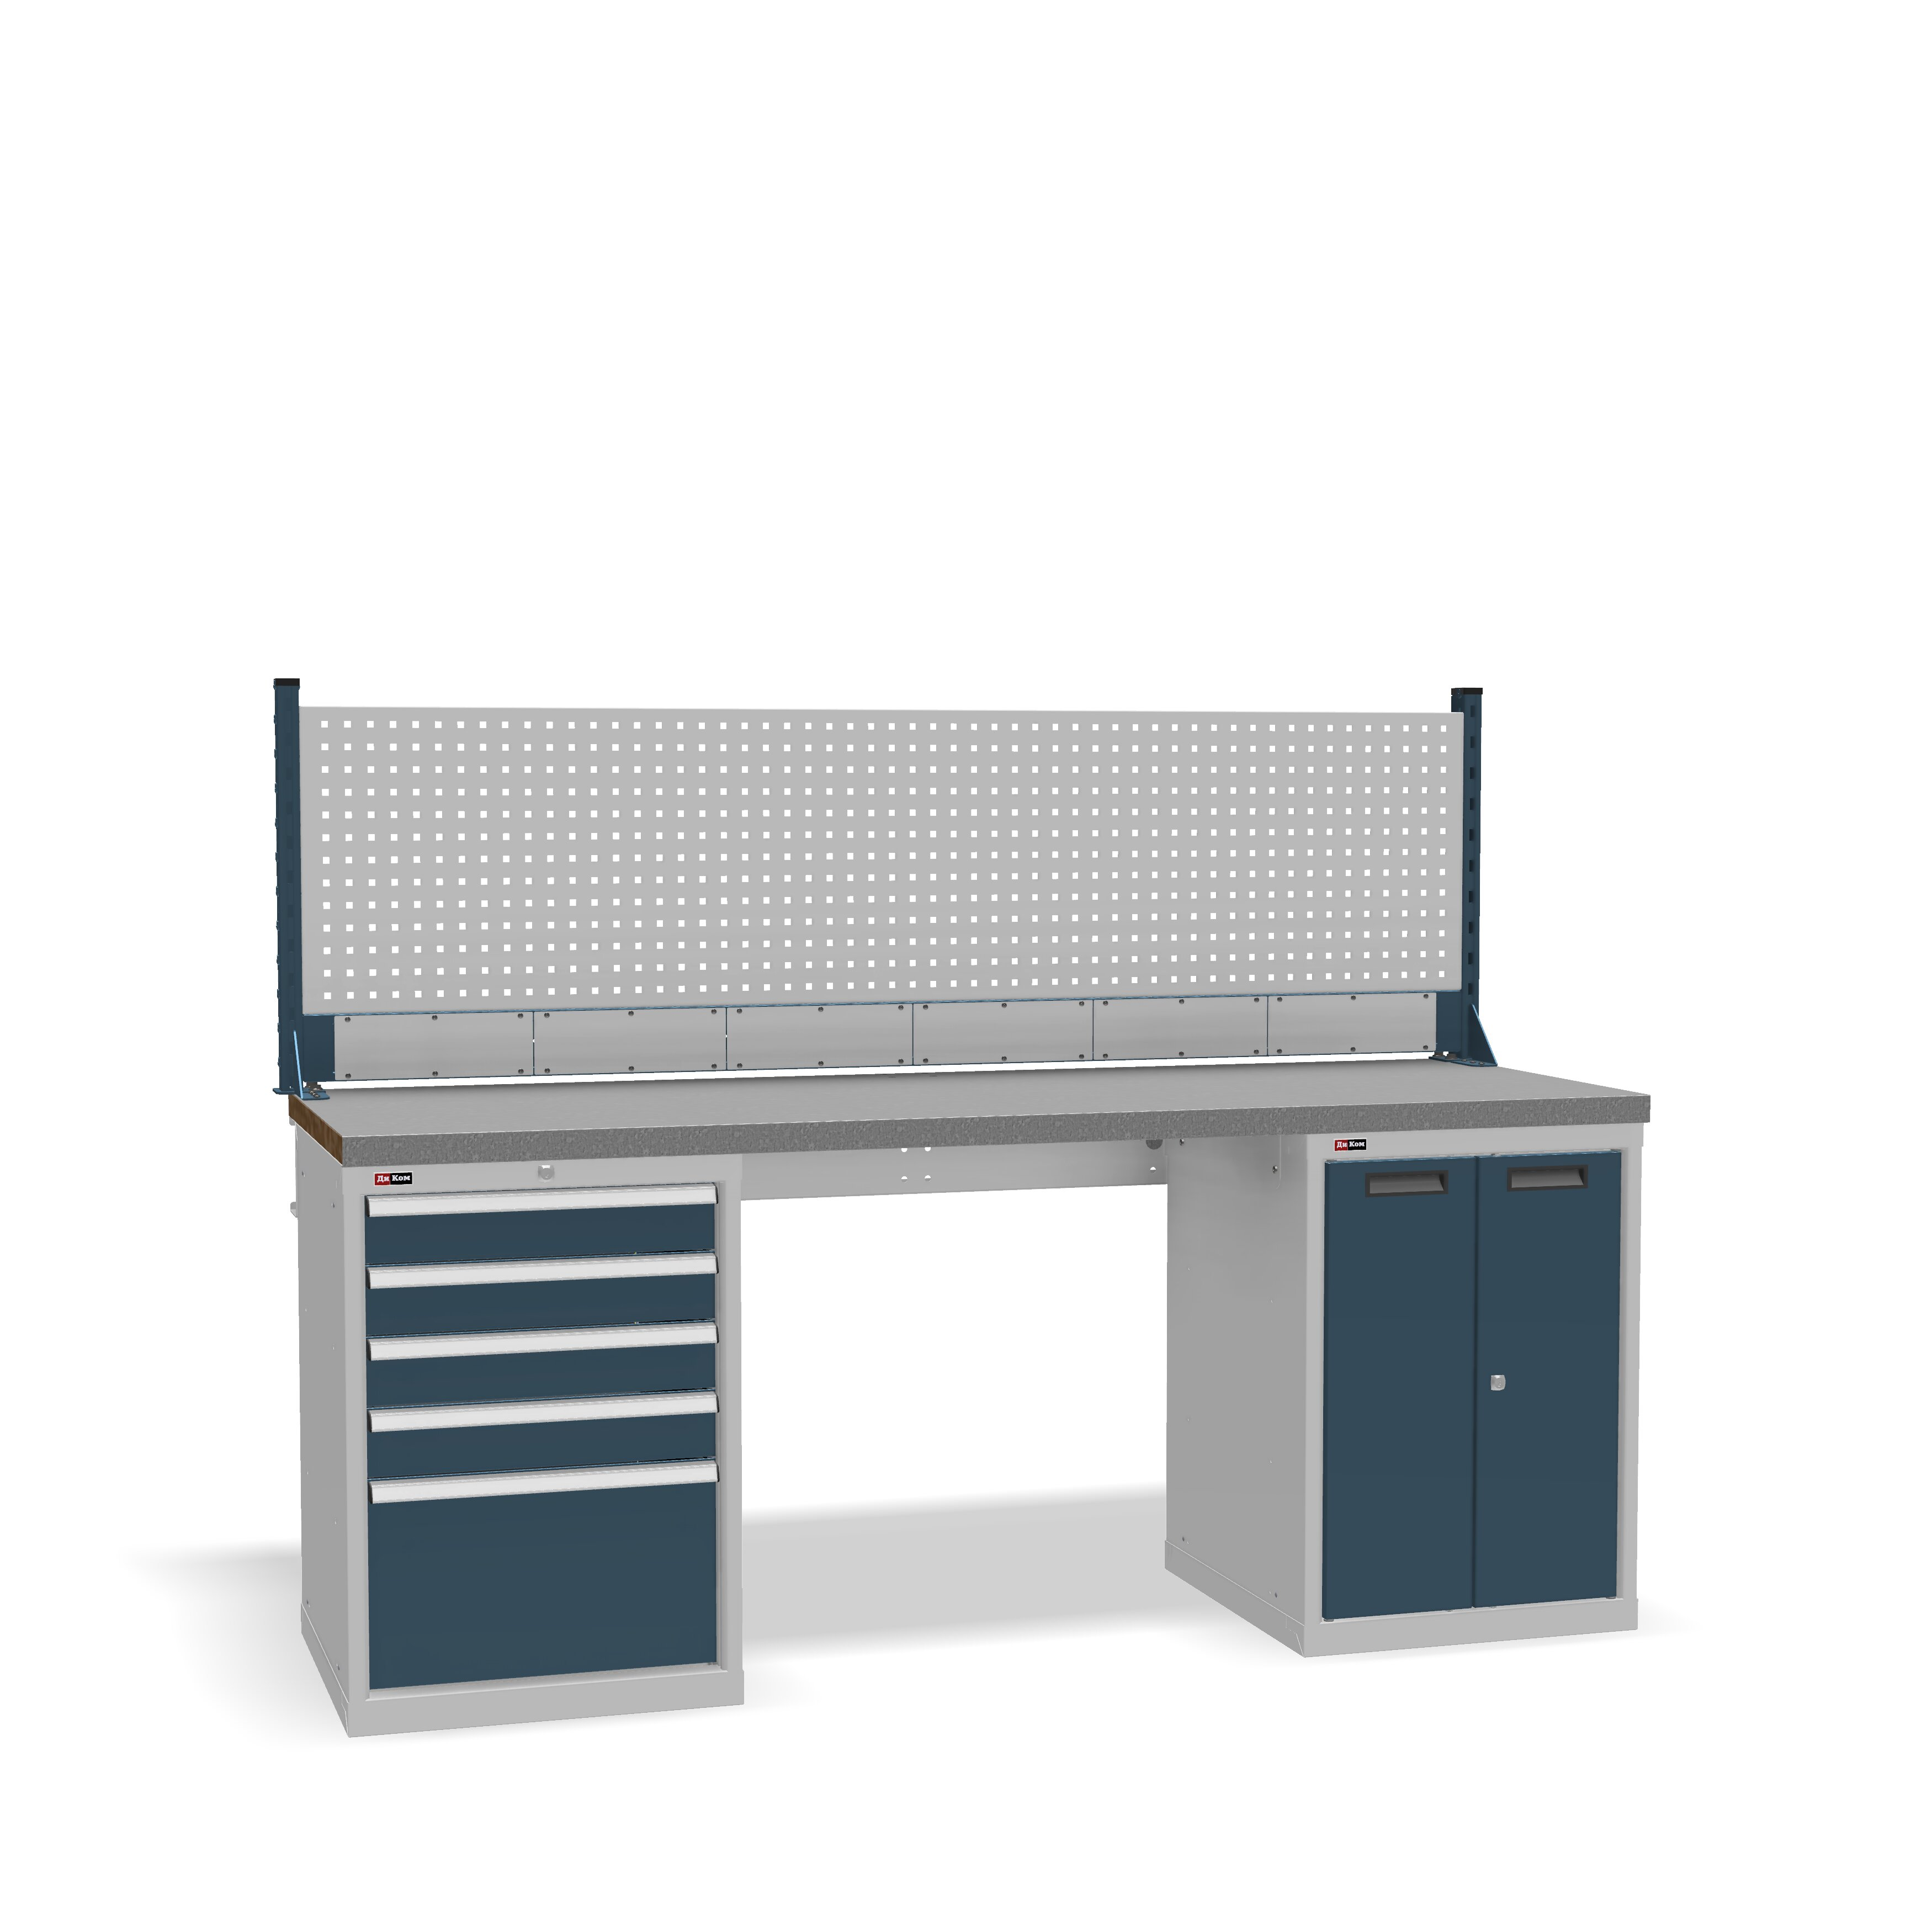 DiKom VS-200-07 Workbench + DiKom Perforated Panel VS-200-E4